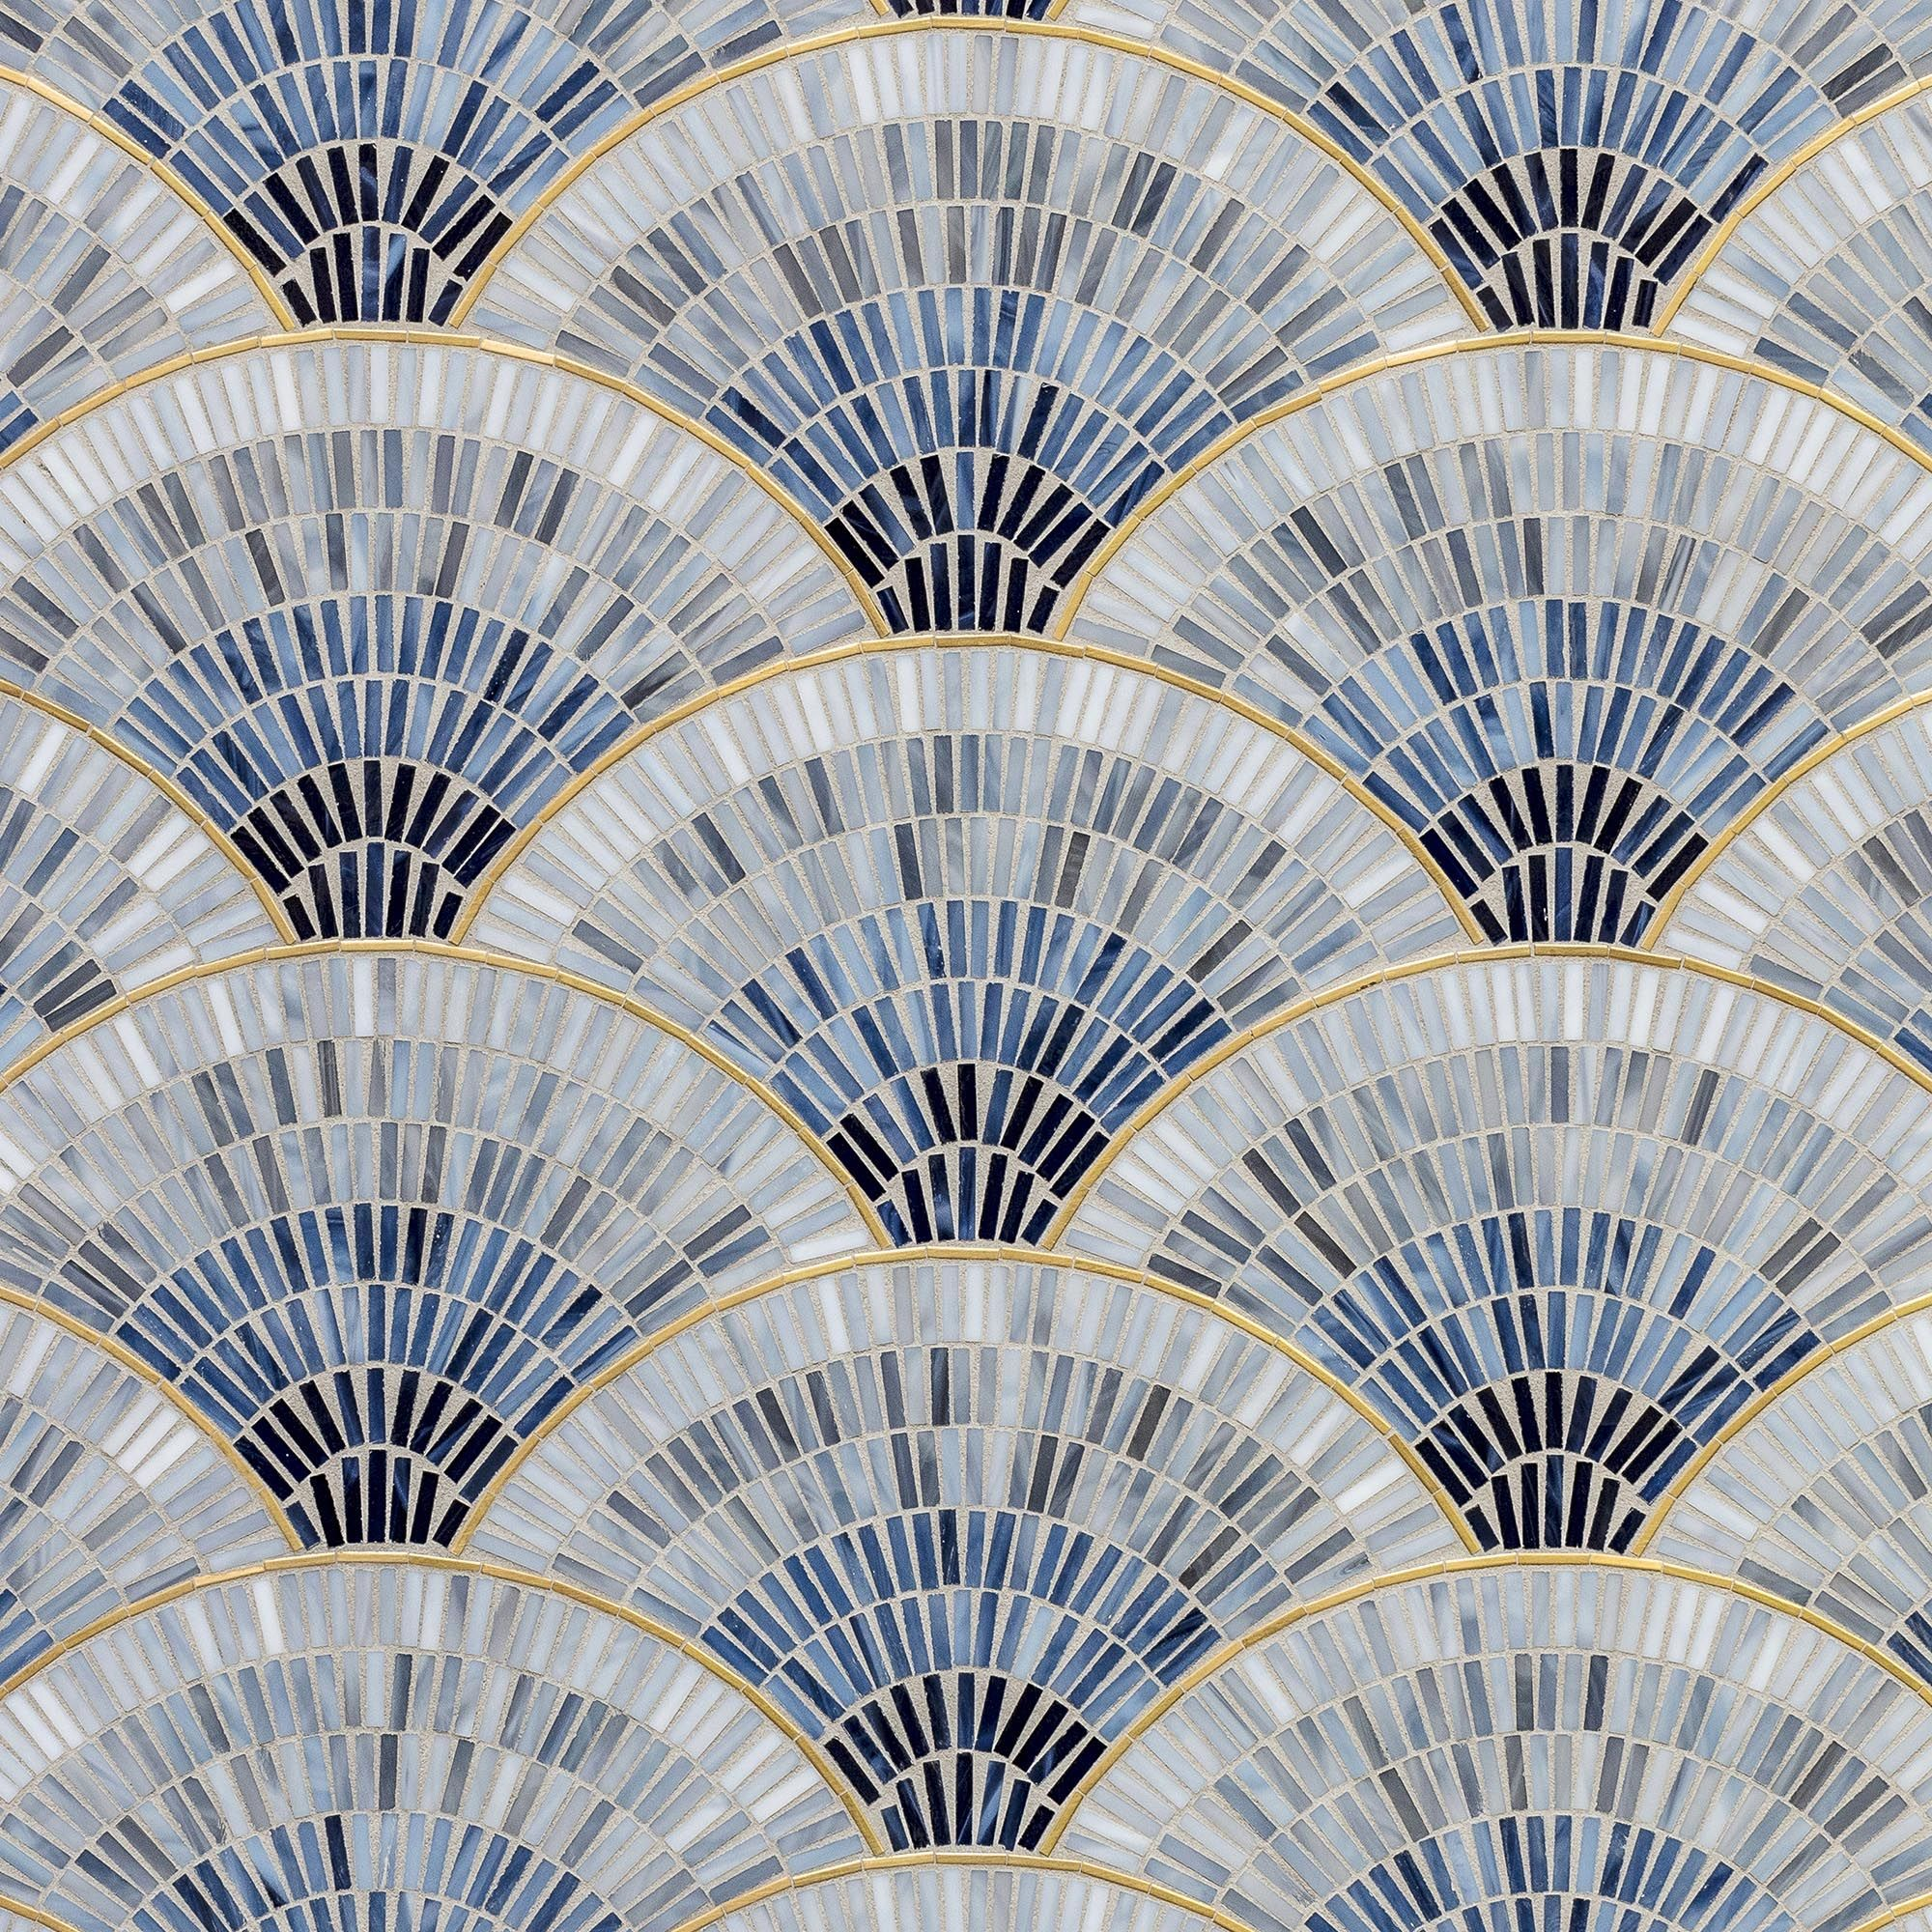 Glass Mosaic Tile Accentuated With Brass And Metal Make Glamorous Art Deco Statements Art Deco Tiles Art Deco Wallpaper Mosaic Glass